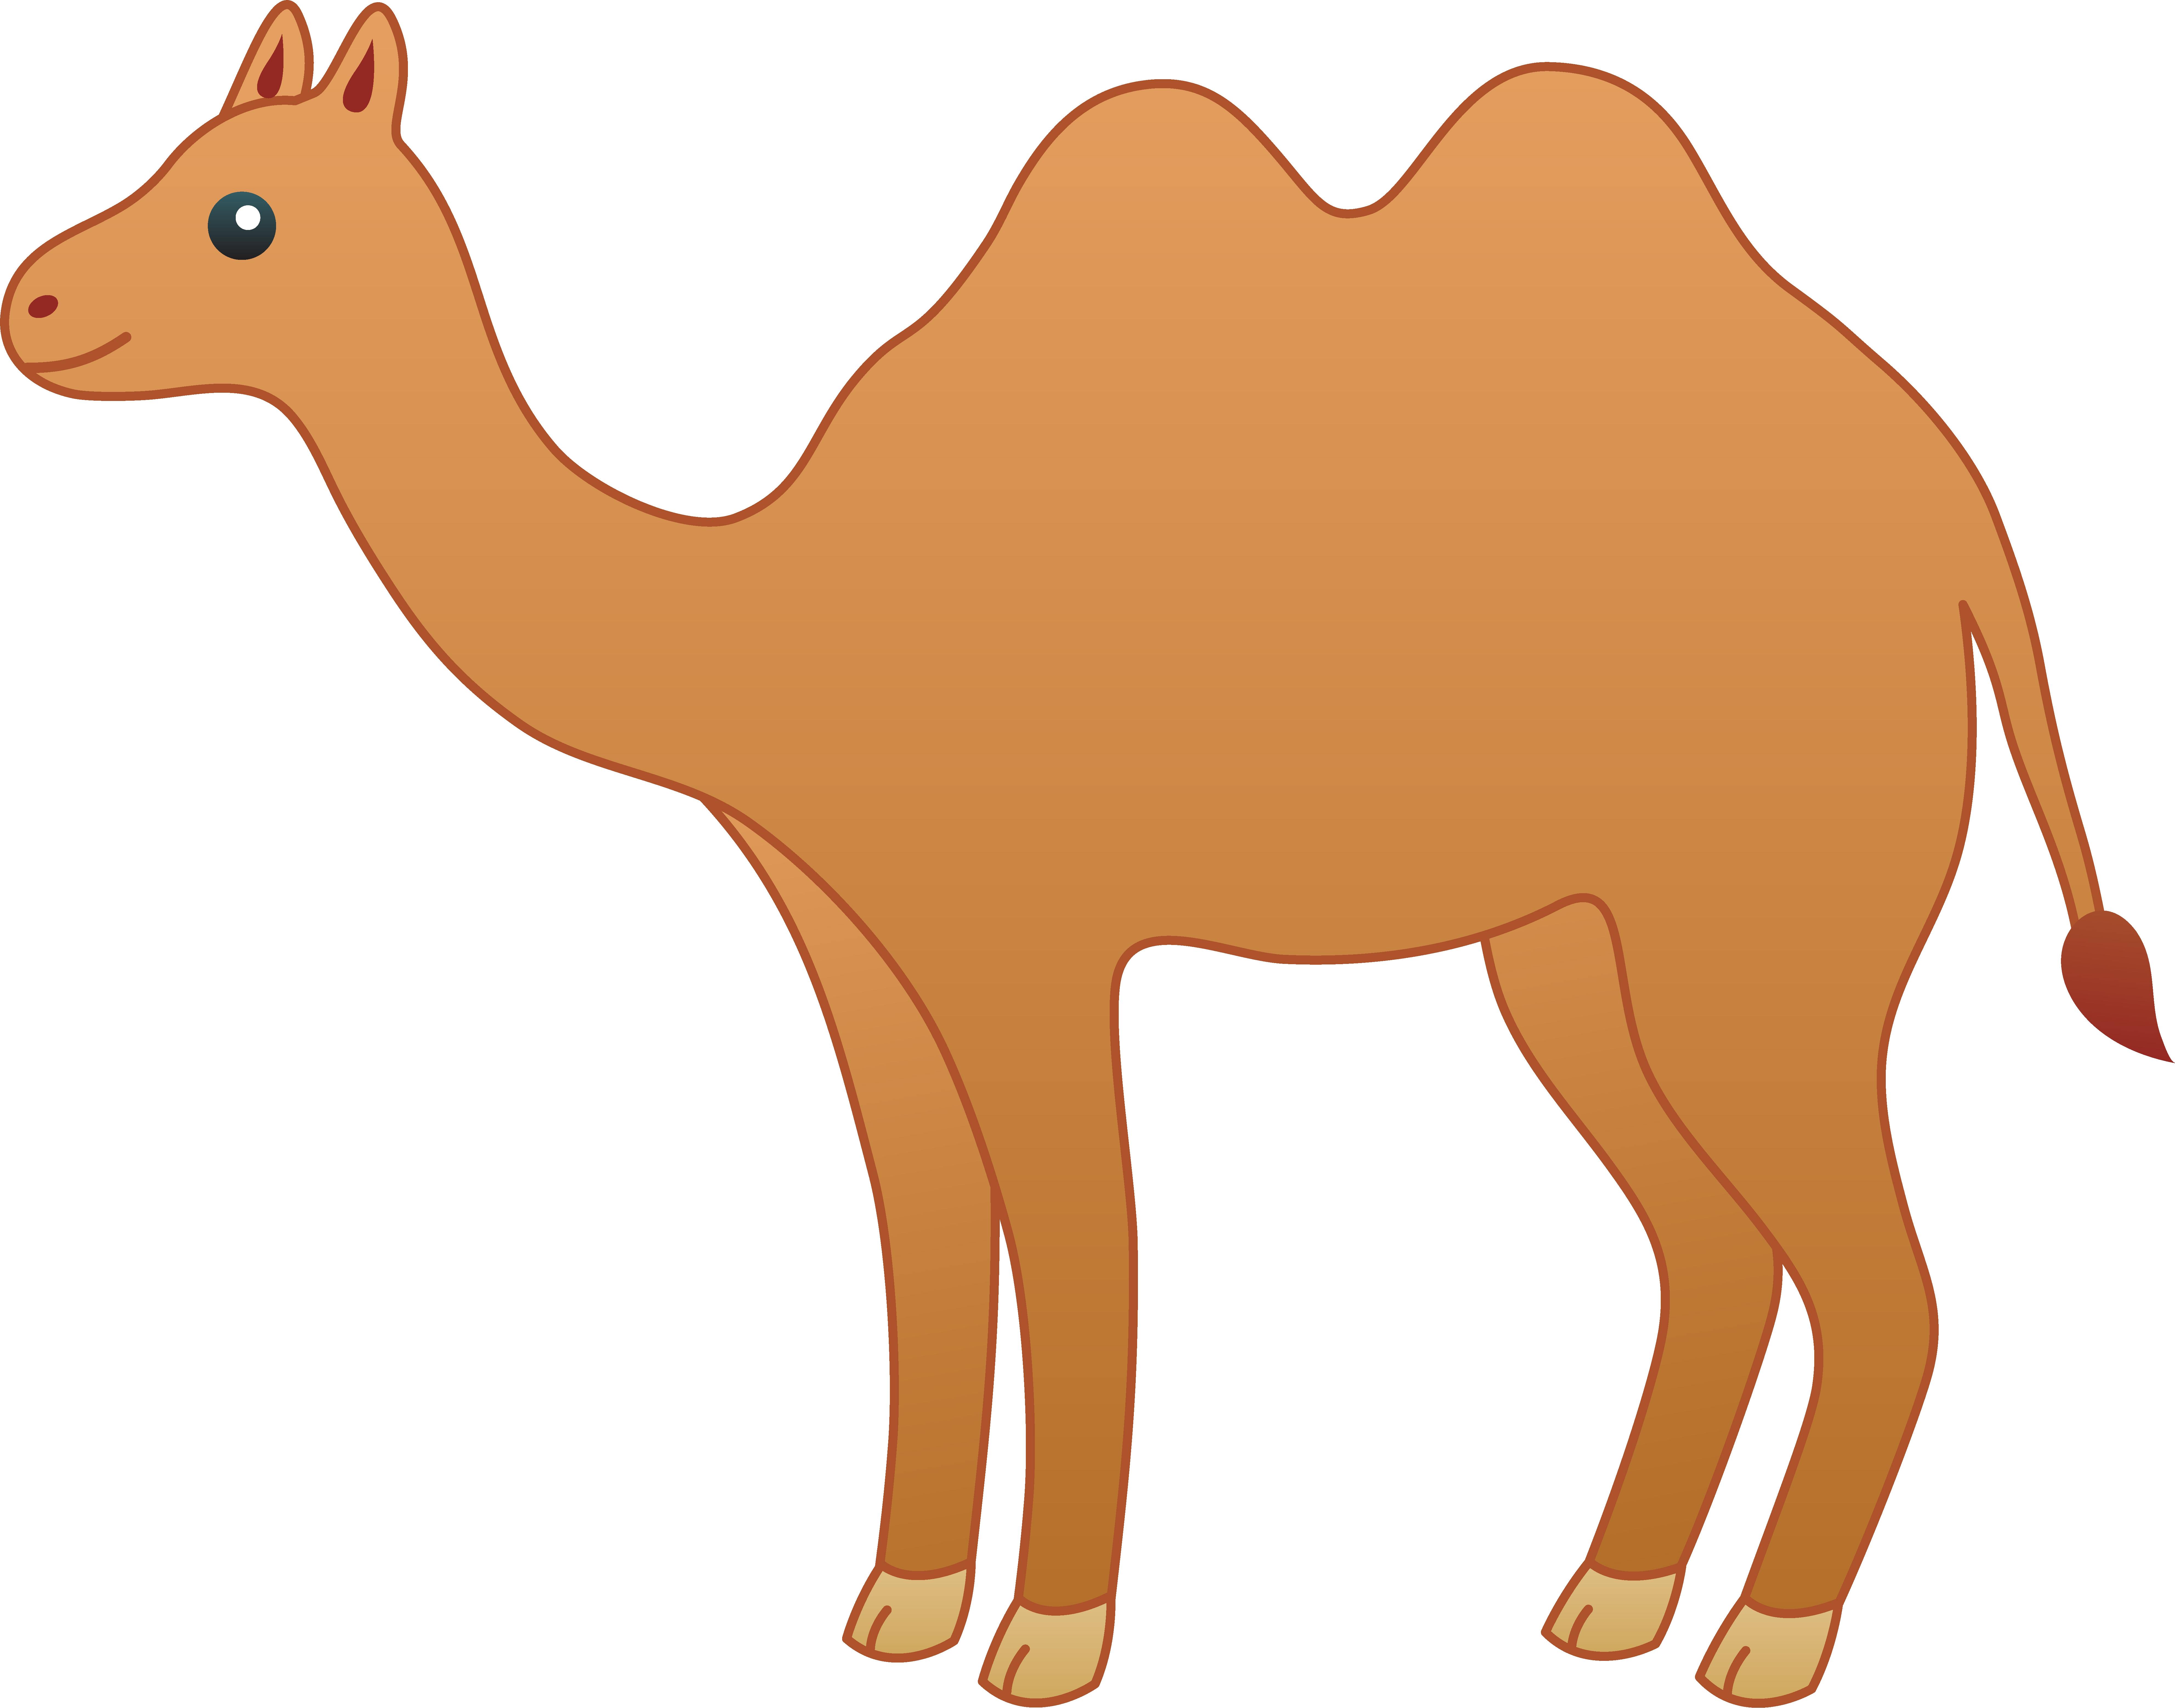 Animated camel clipart free jpg library library Animated camel clipart clipartfest - WikiClipArt jpg library library